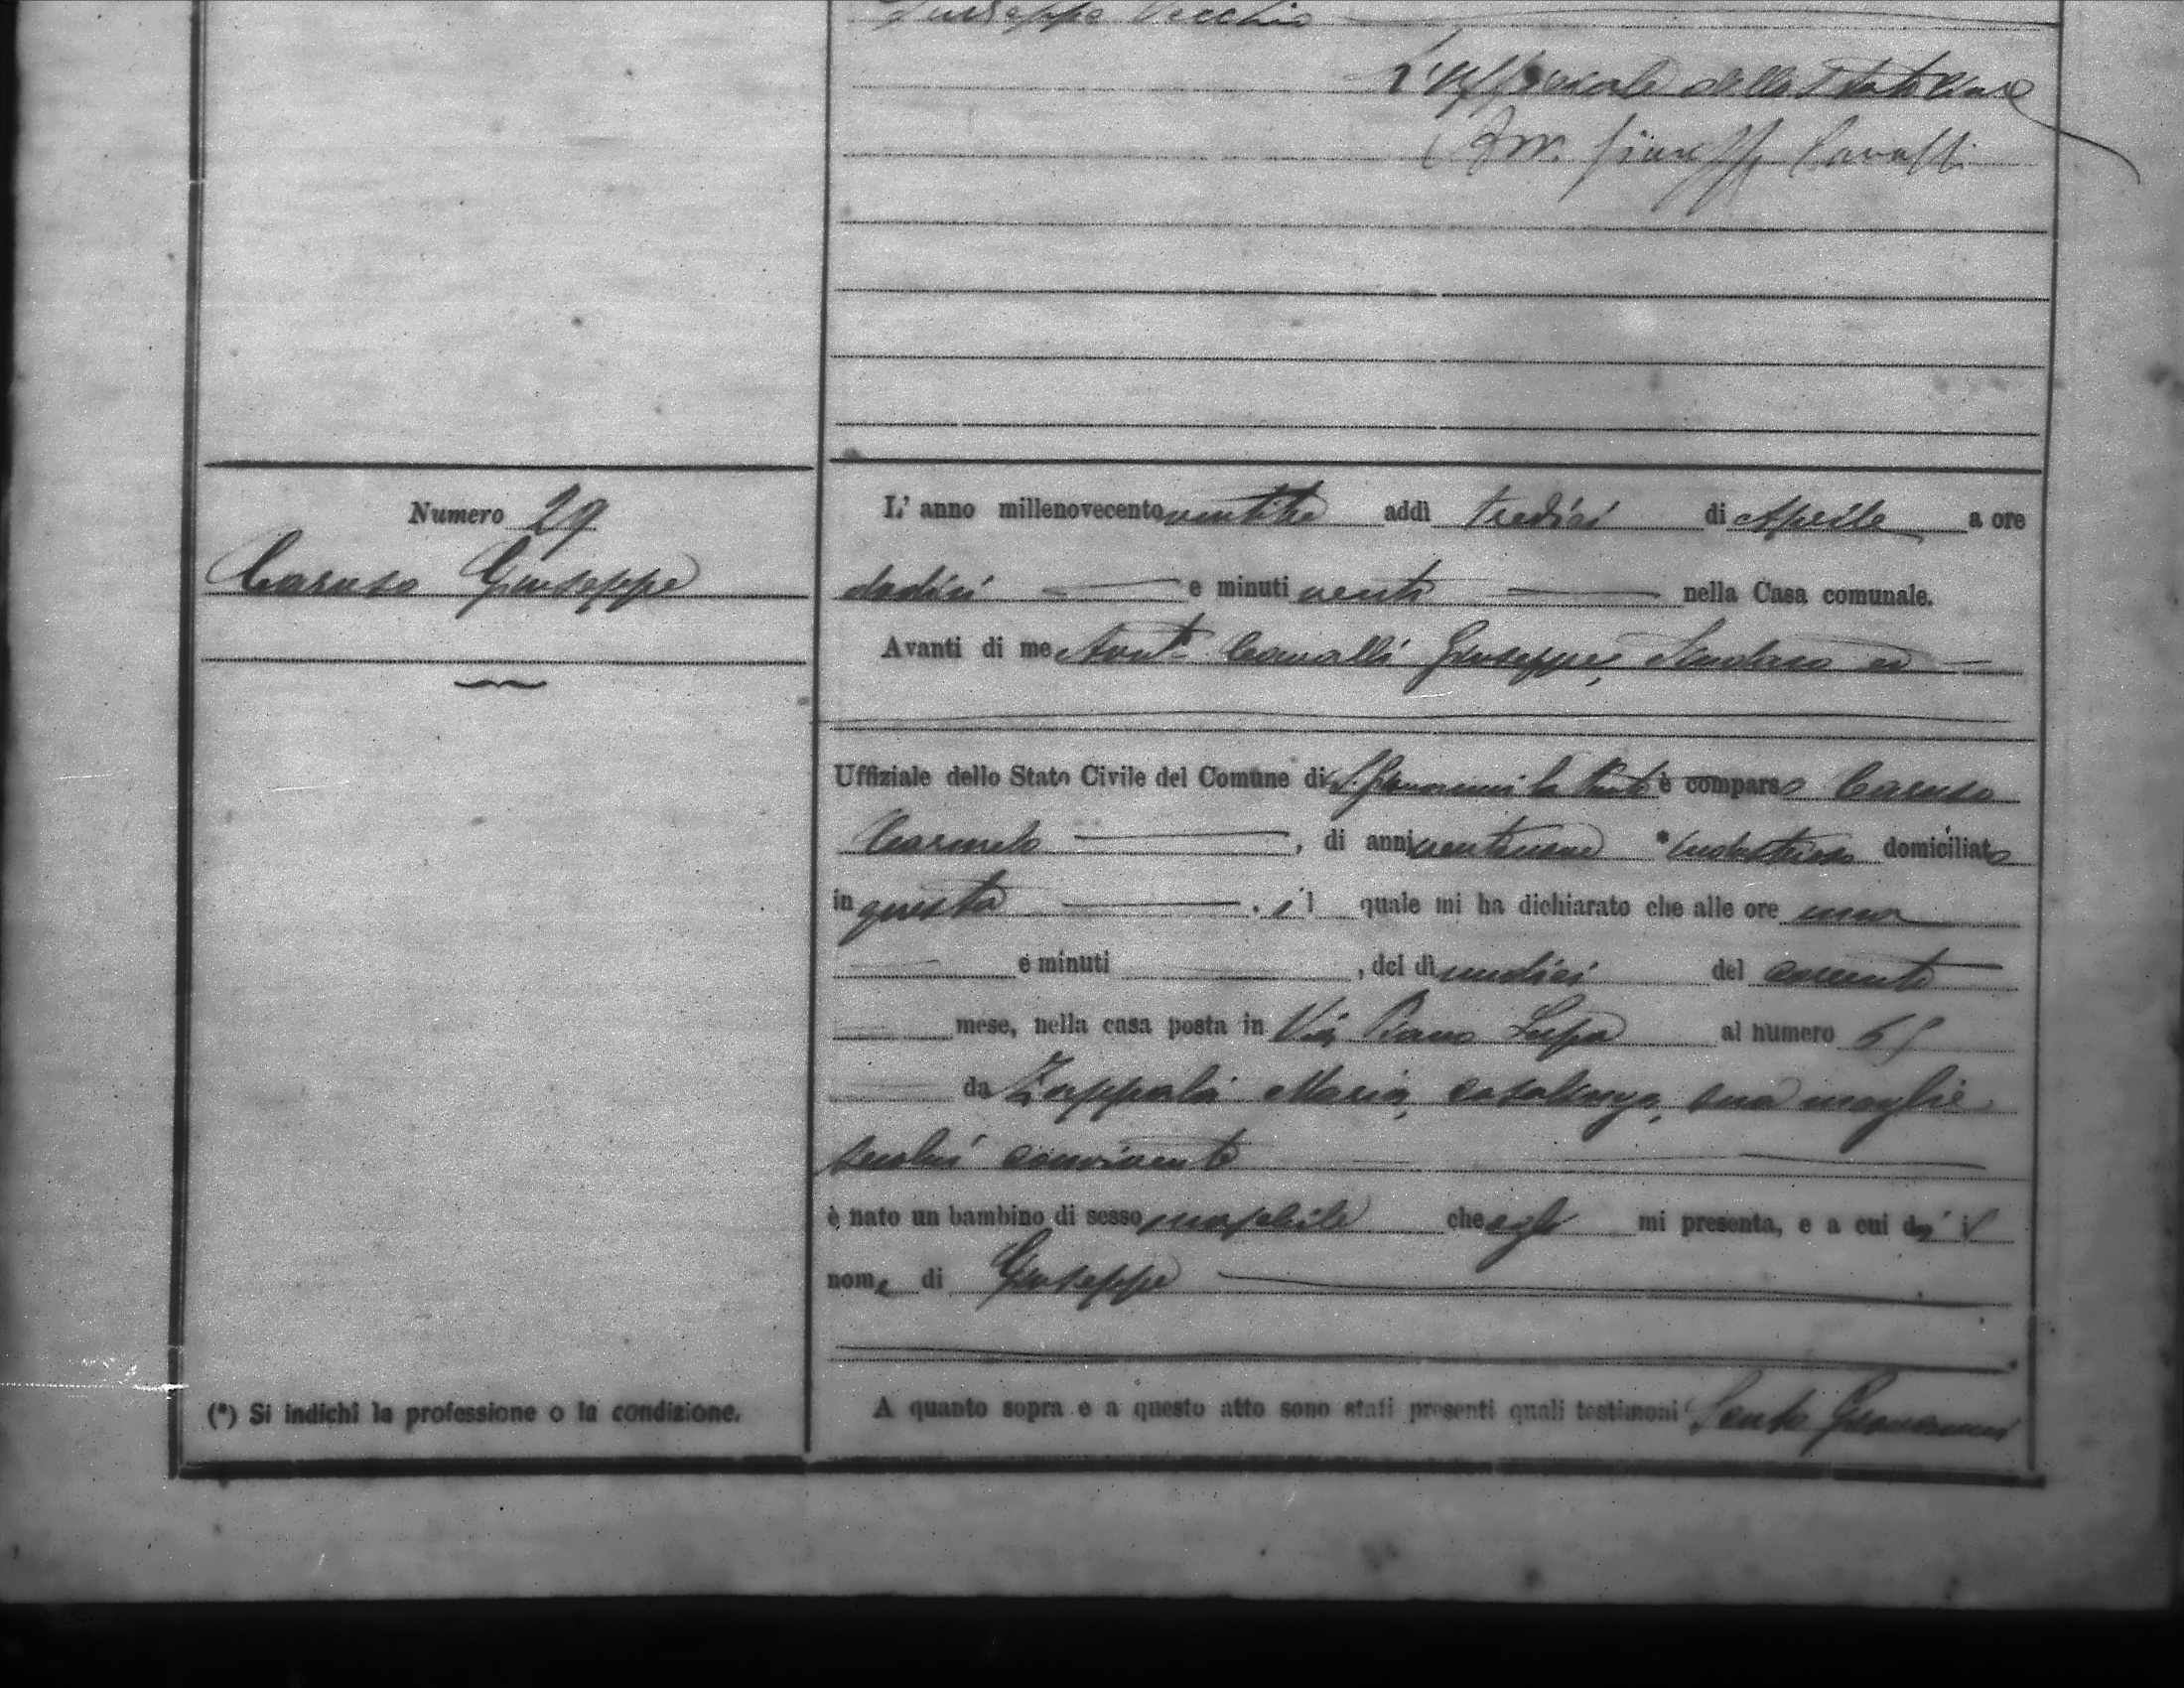 Giuseppe Caruso birth record page 1.shrink.jpg